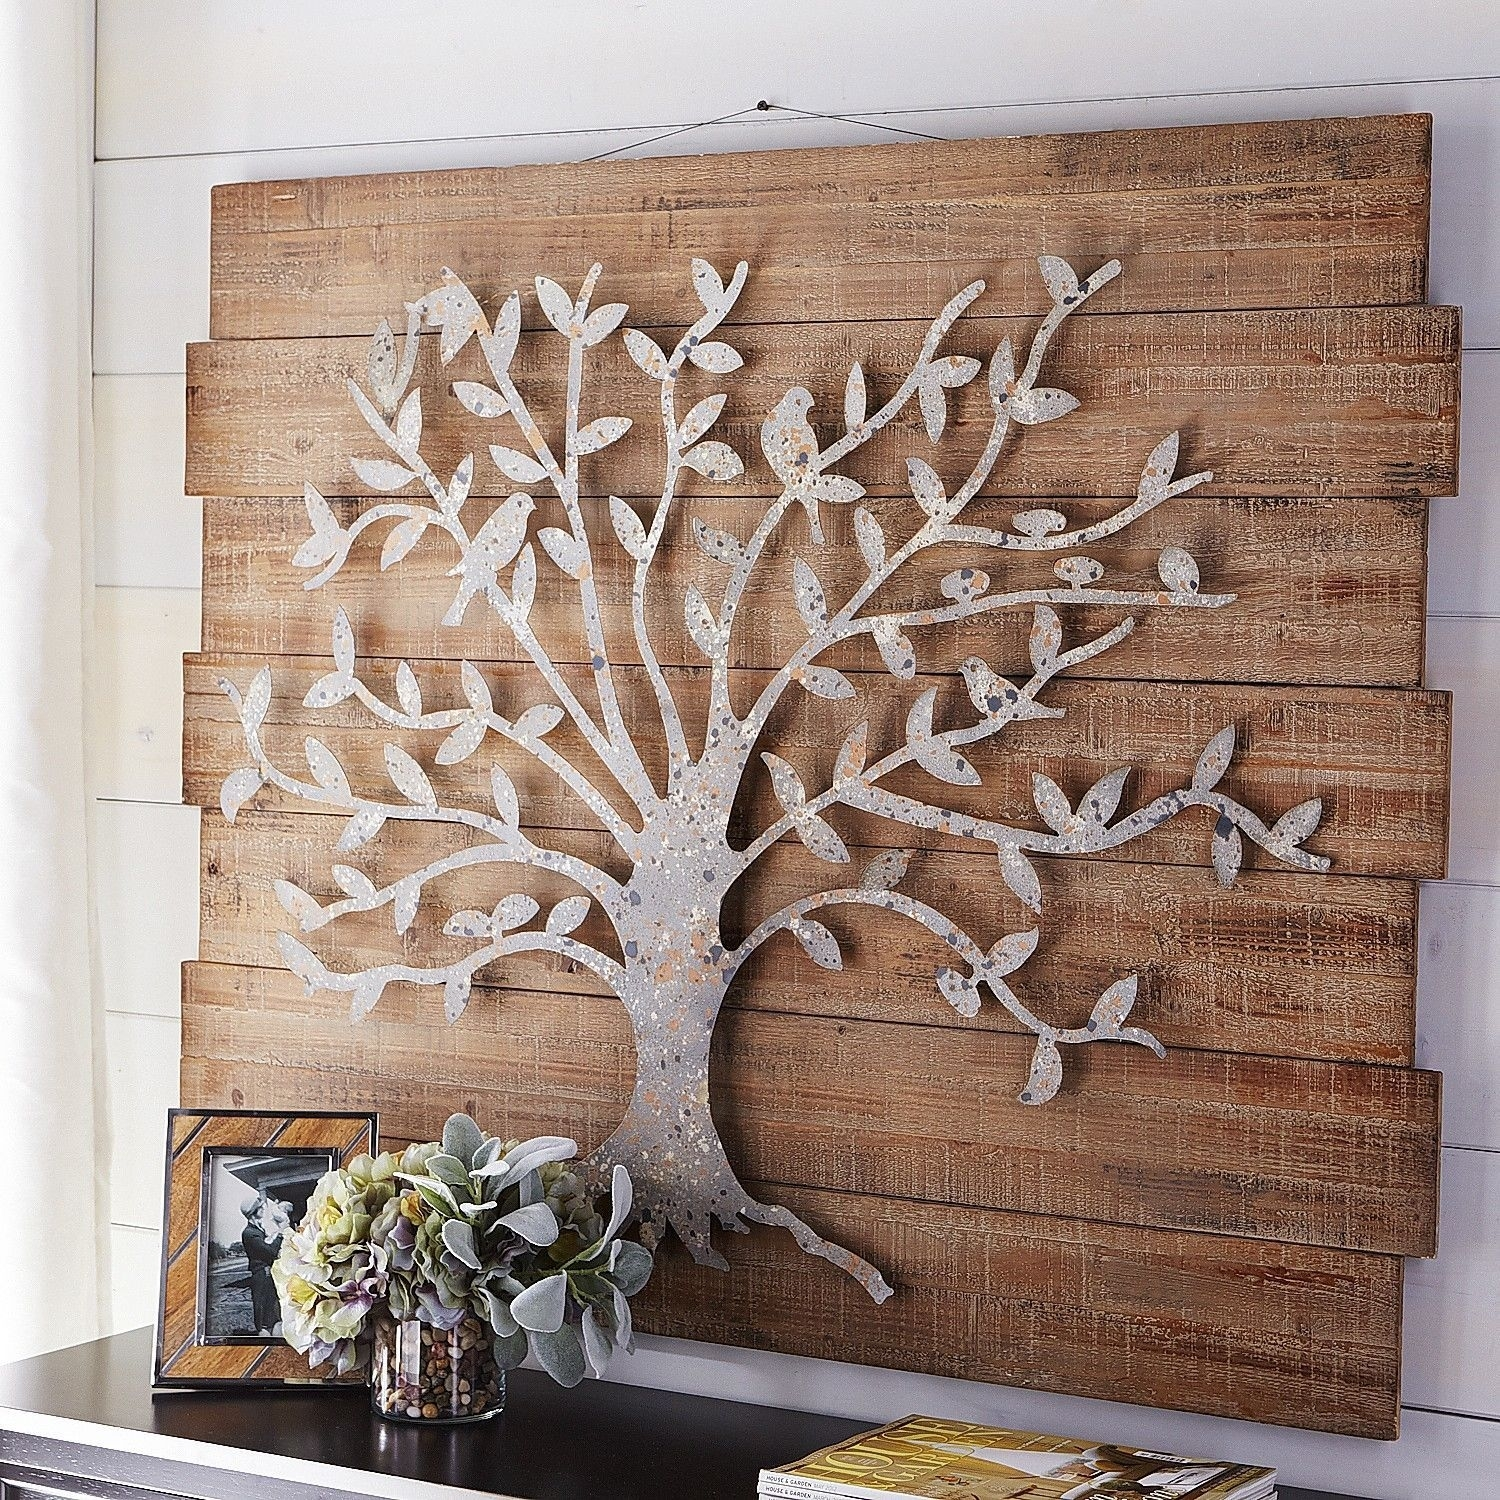 Timeless Tree Wall Decor | Pier 1 Imports … | Metal Work | Pinte… Intended For Recent Wall Tree Art (View 13 of 20)